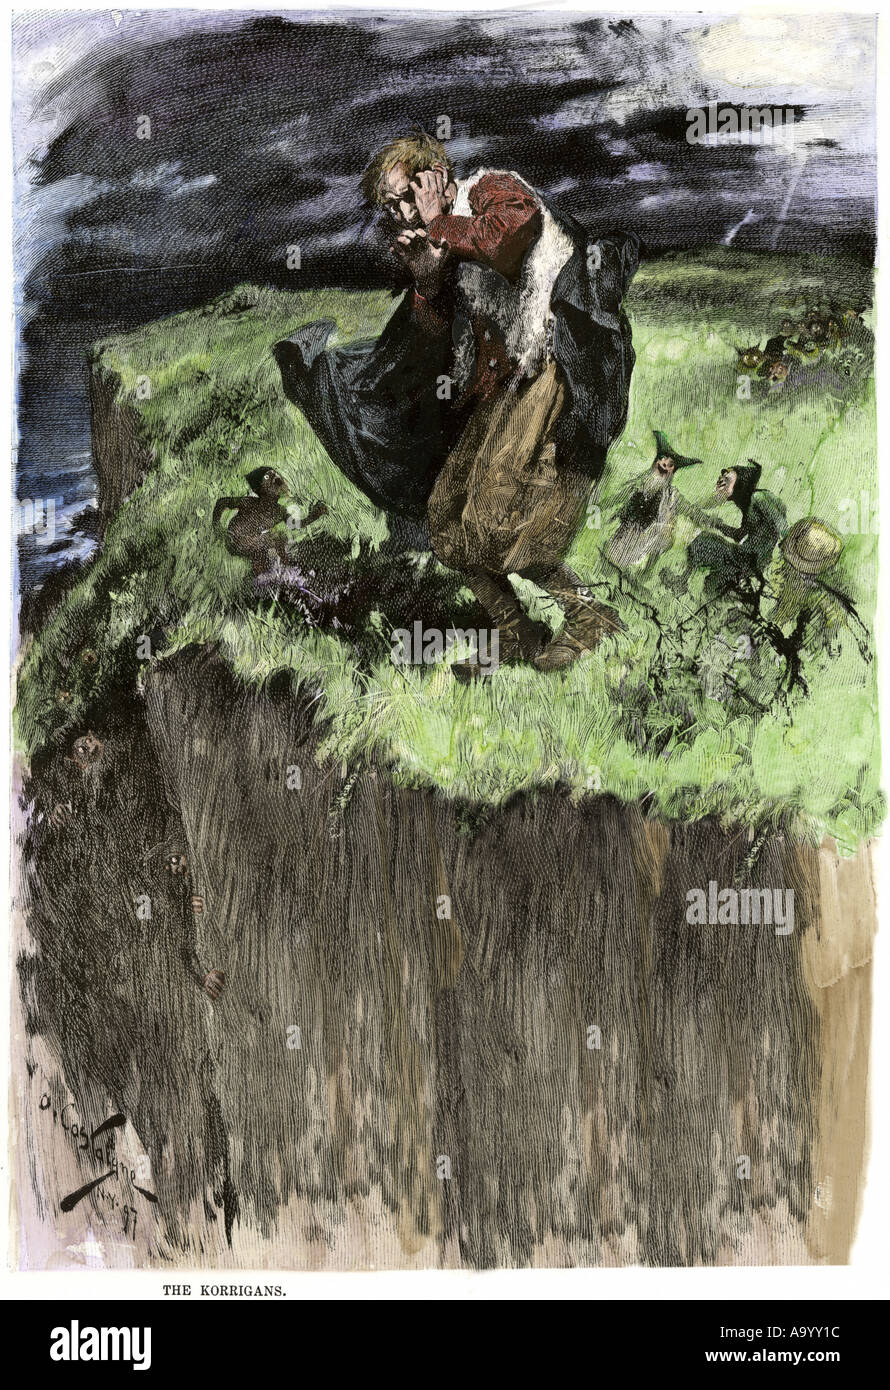 Clurichauns of Irish folklore leading a tipsy traveler astray. Hand-colored woodcut - Stock Image